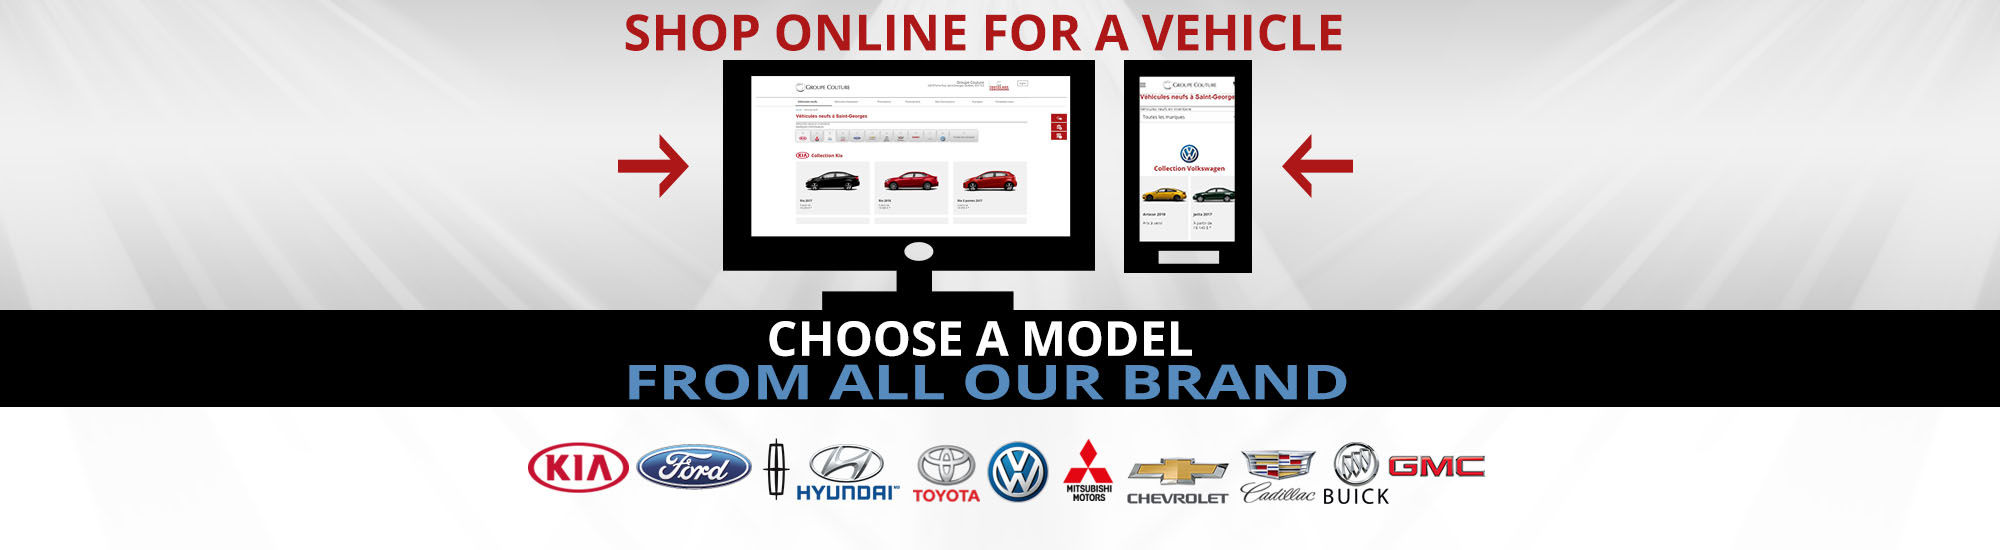 shop online for a vehicle